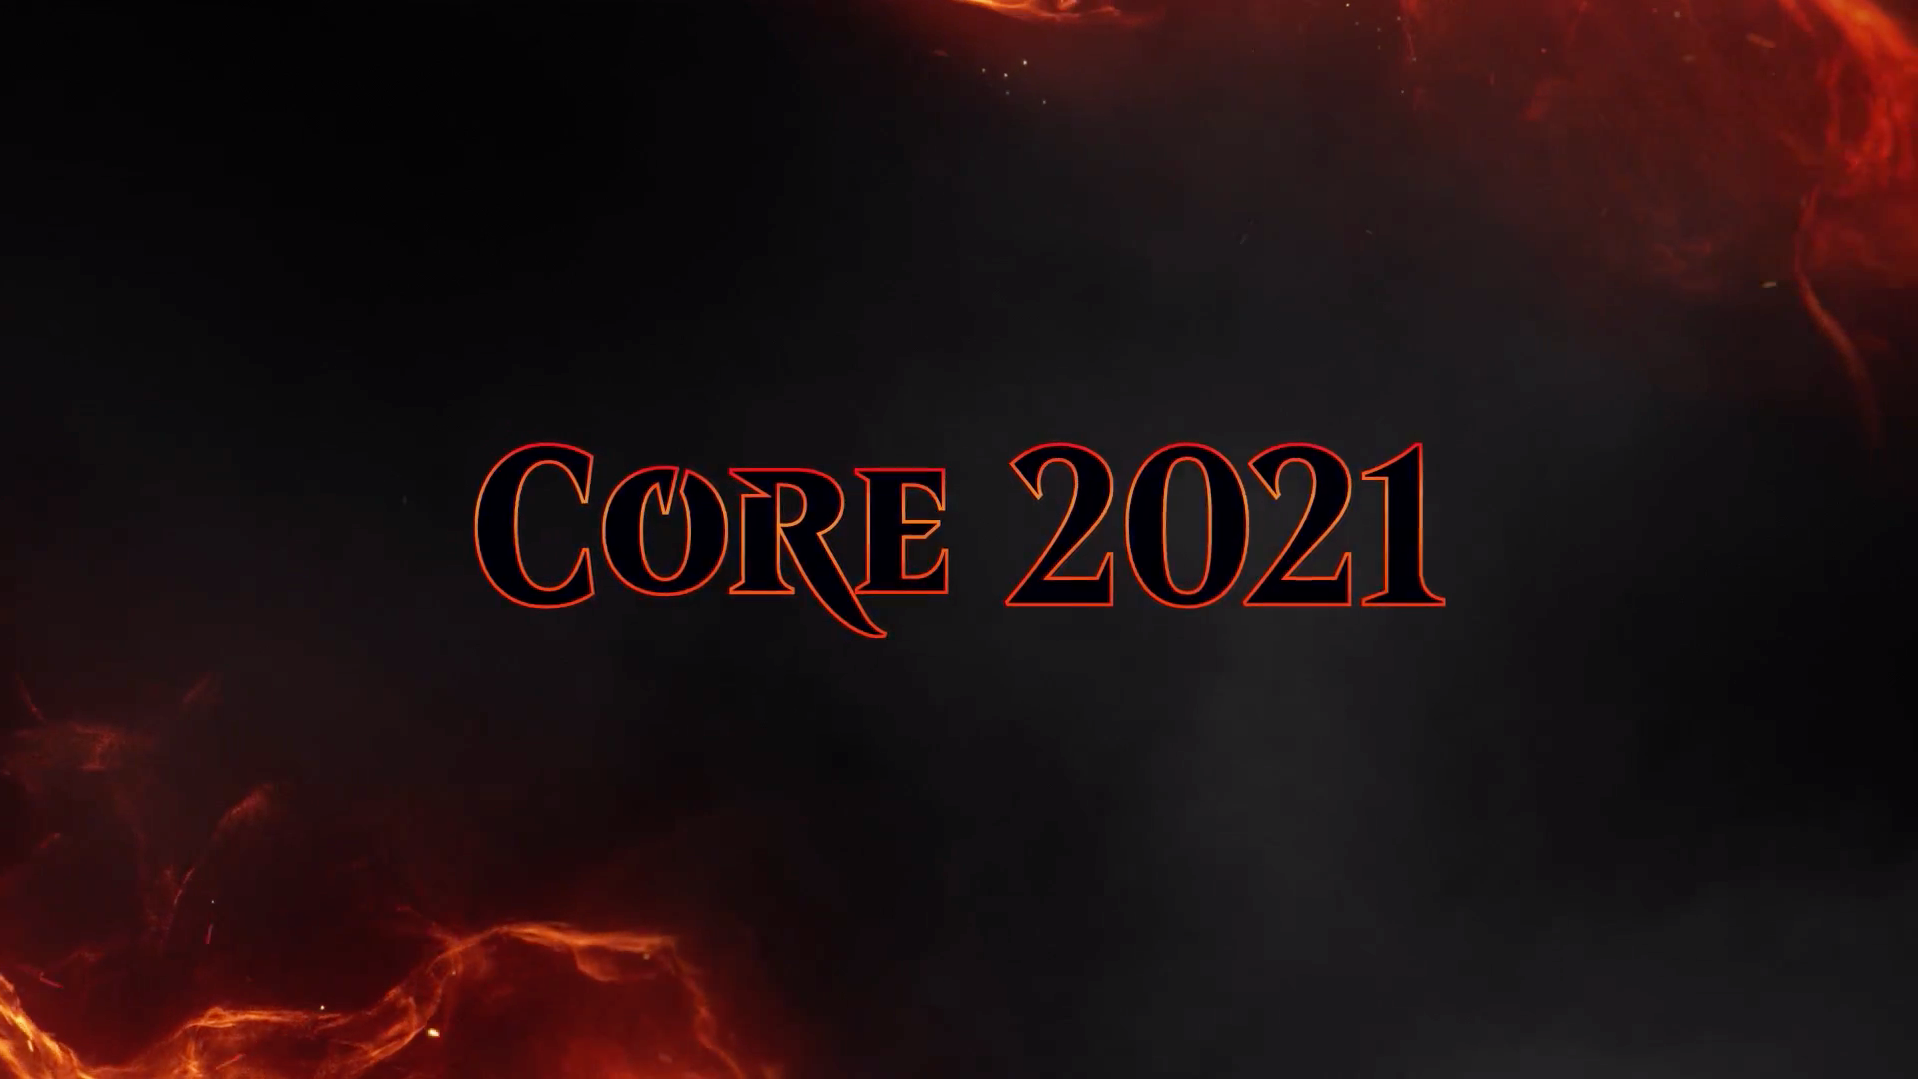 Core 2021 Box Preorder | Myrtle Beach Games & Comics